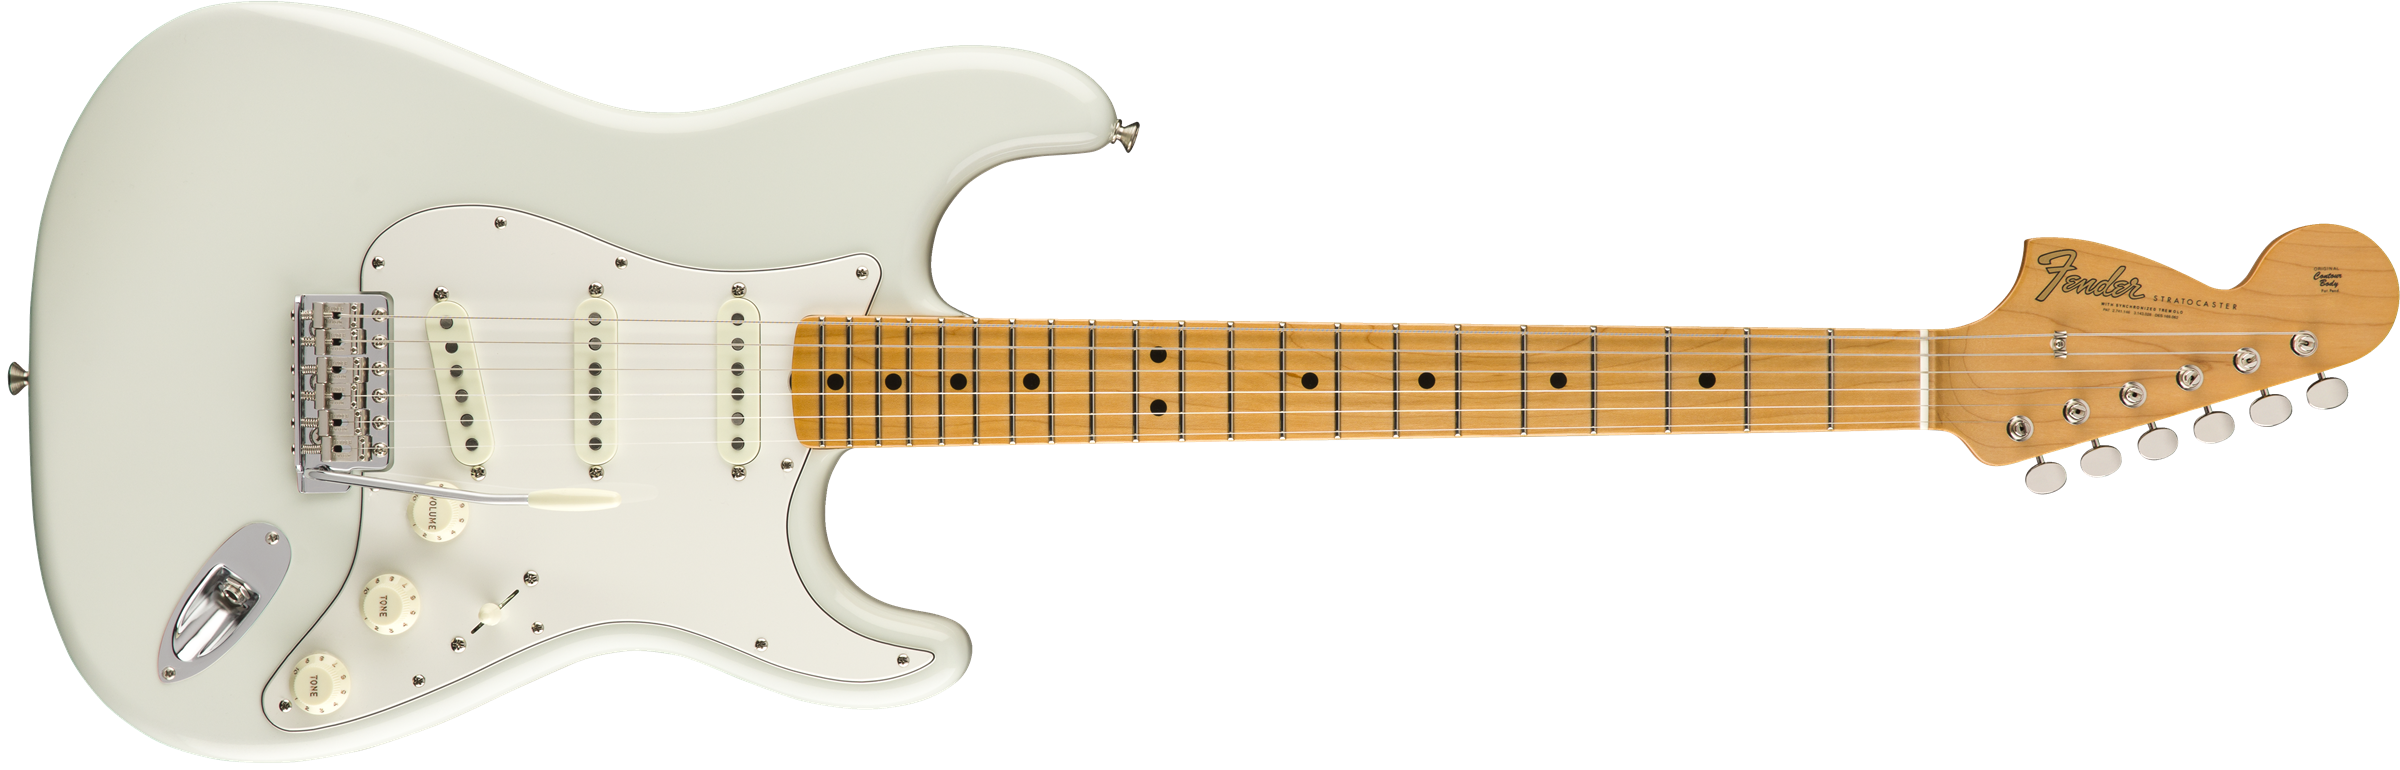 FENDER-Jimi-Hendrix-Voodoo-Child-Signature-Stratocaster-NOS-Maple-Fingerboard-Olympic-White-sku-571004344